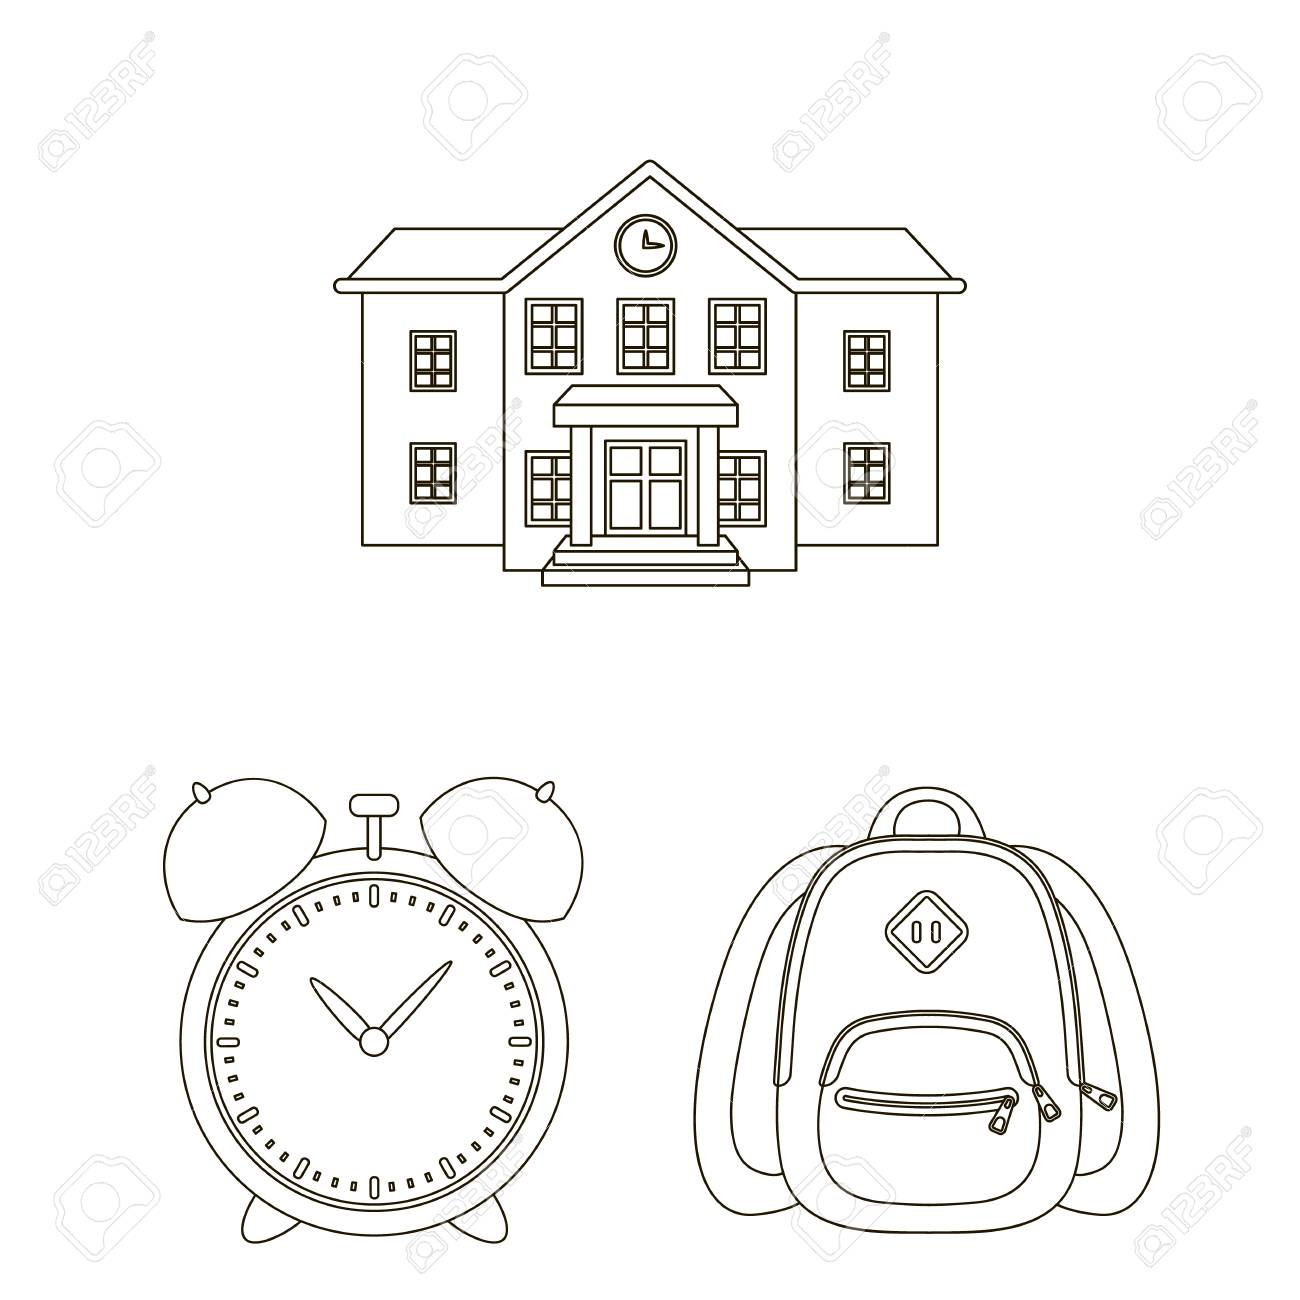 School and education outline icons in set collection for design College,